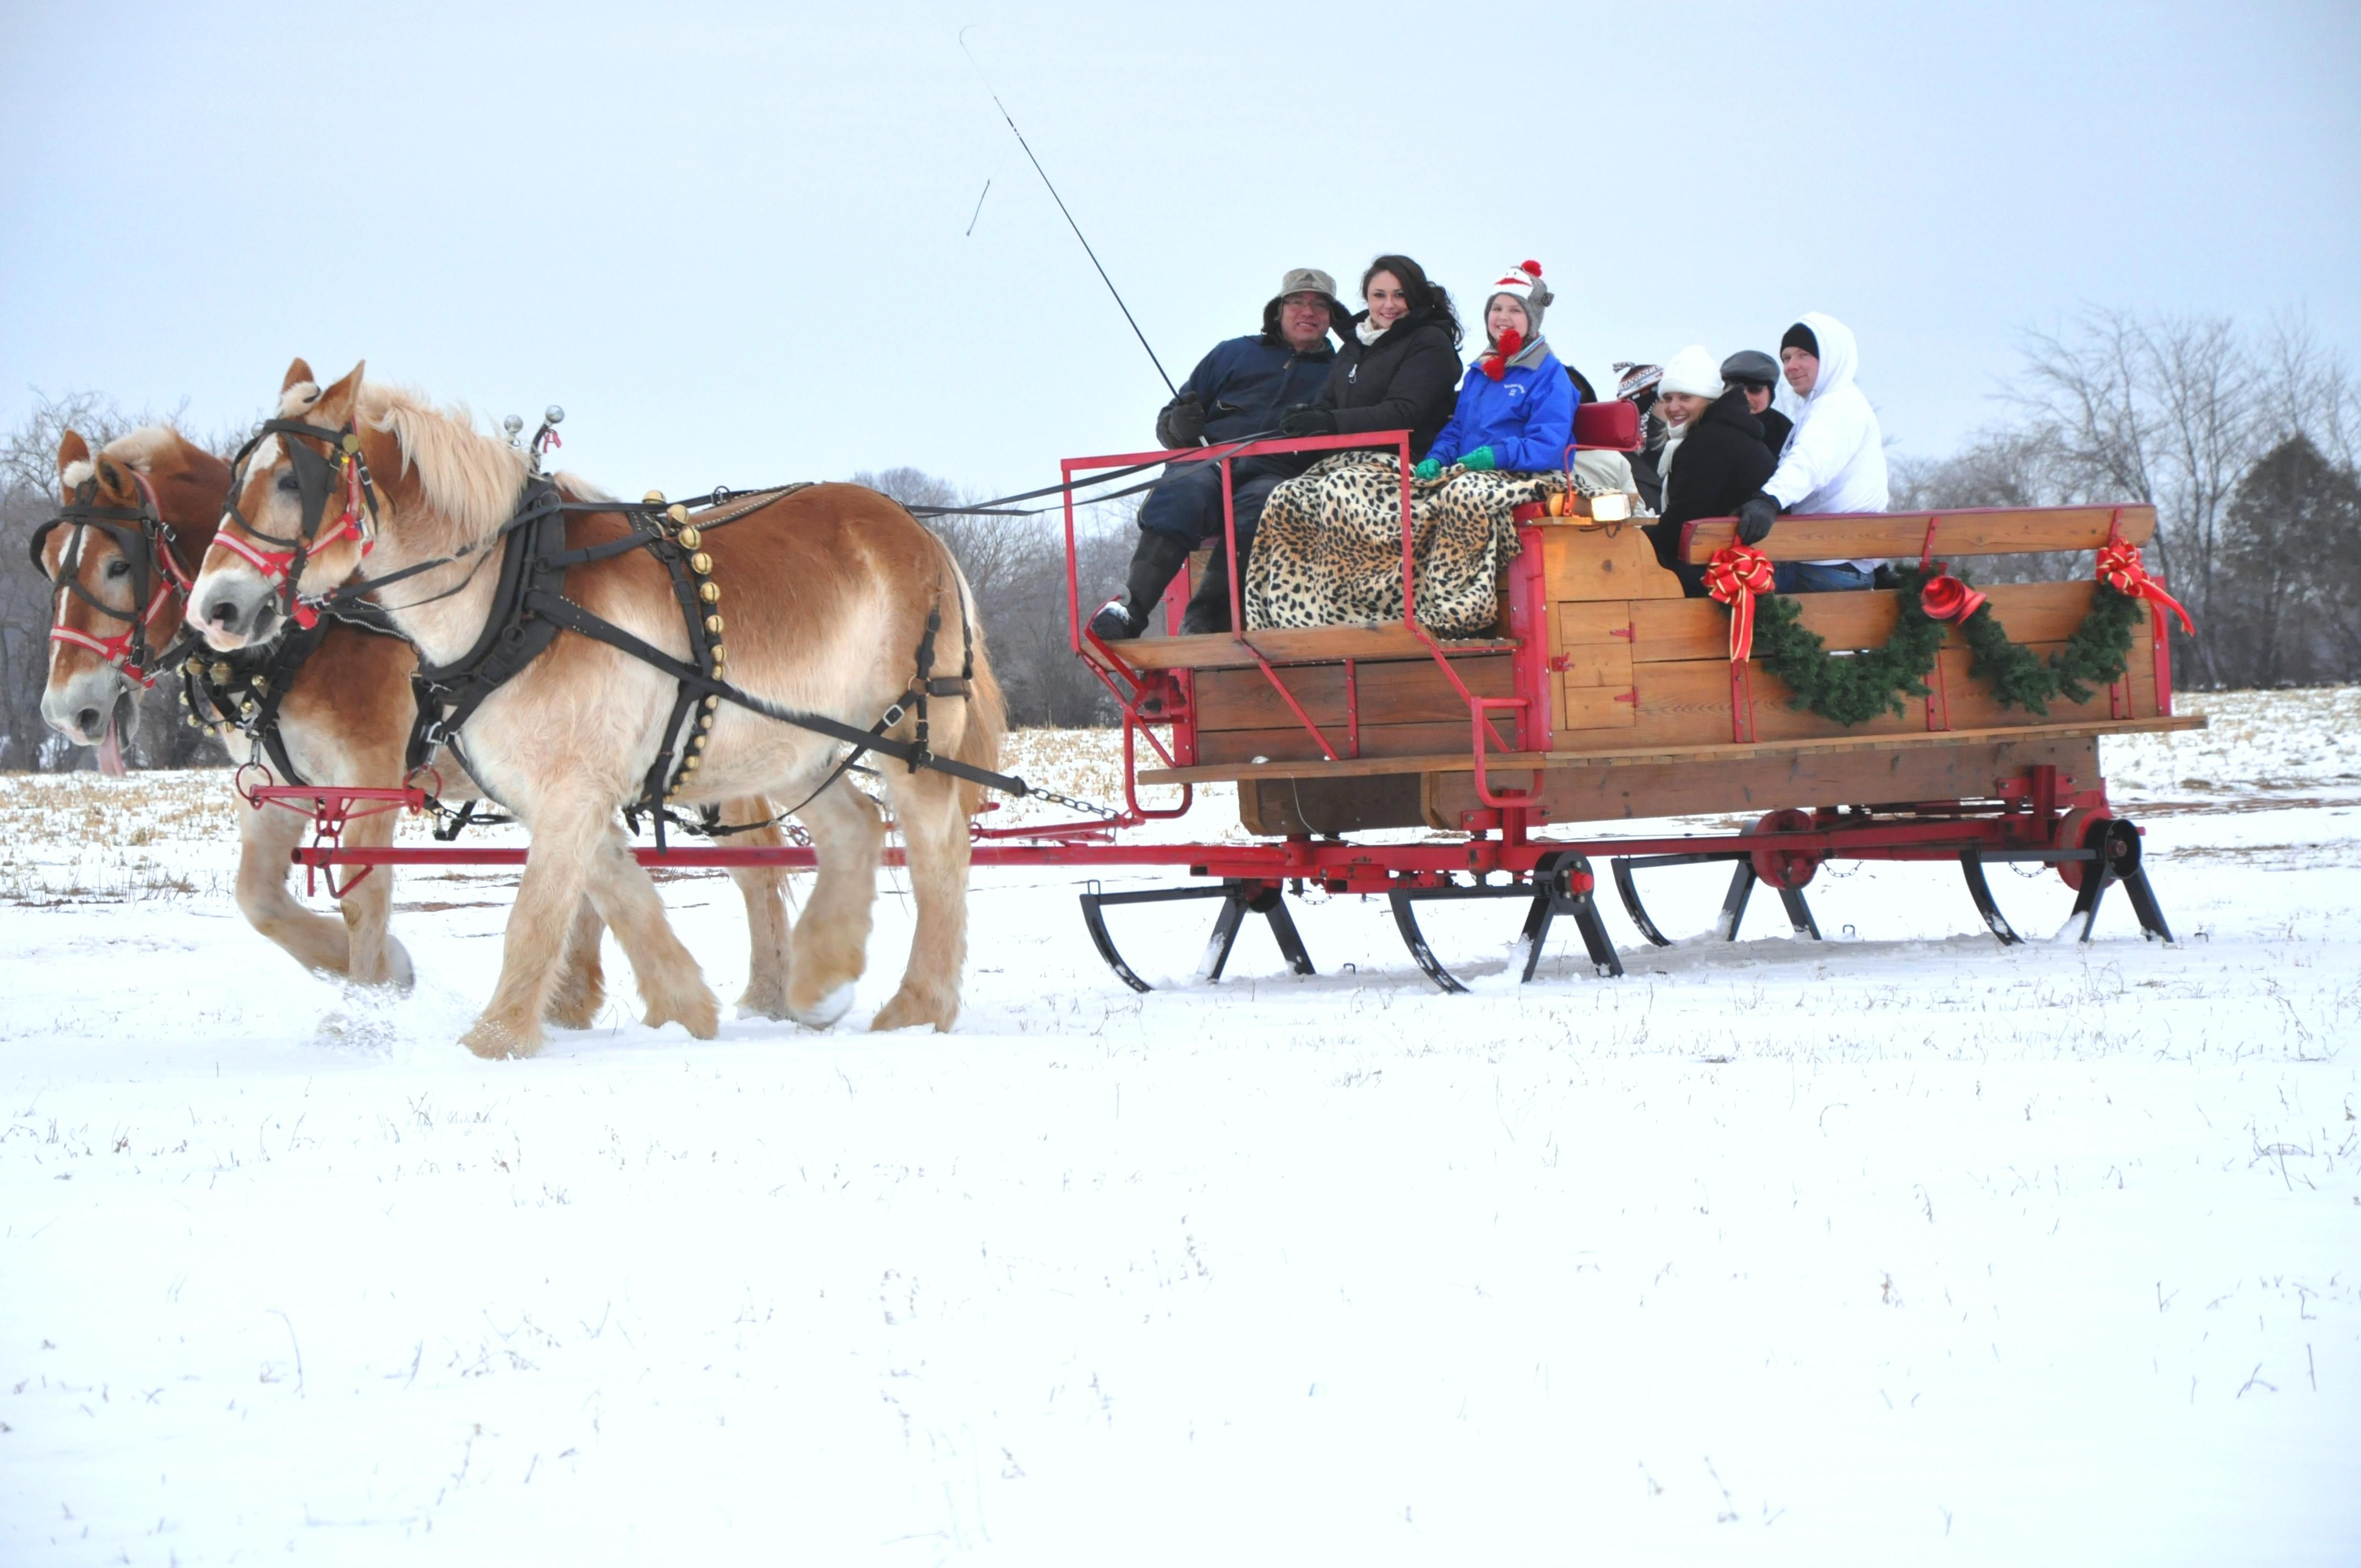 pin snow ride carriage - photo #23